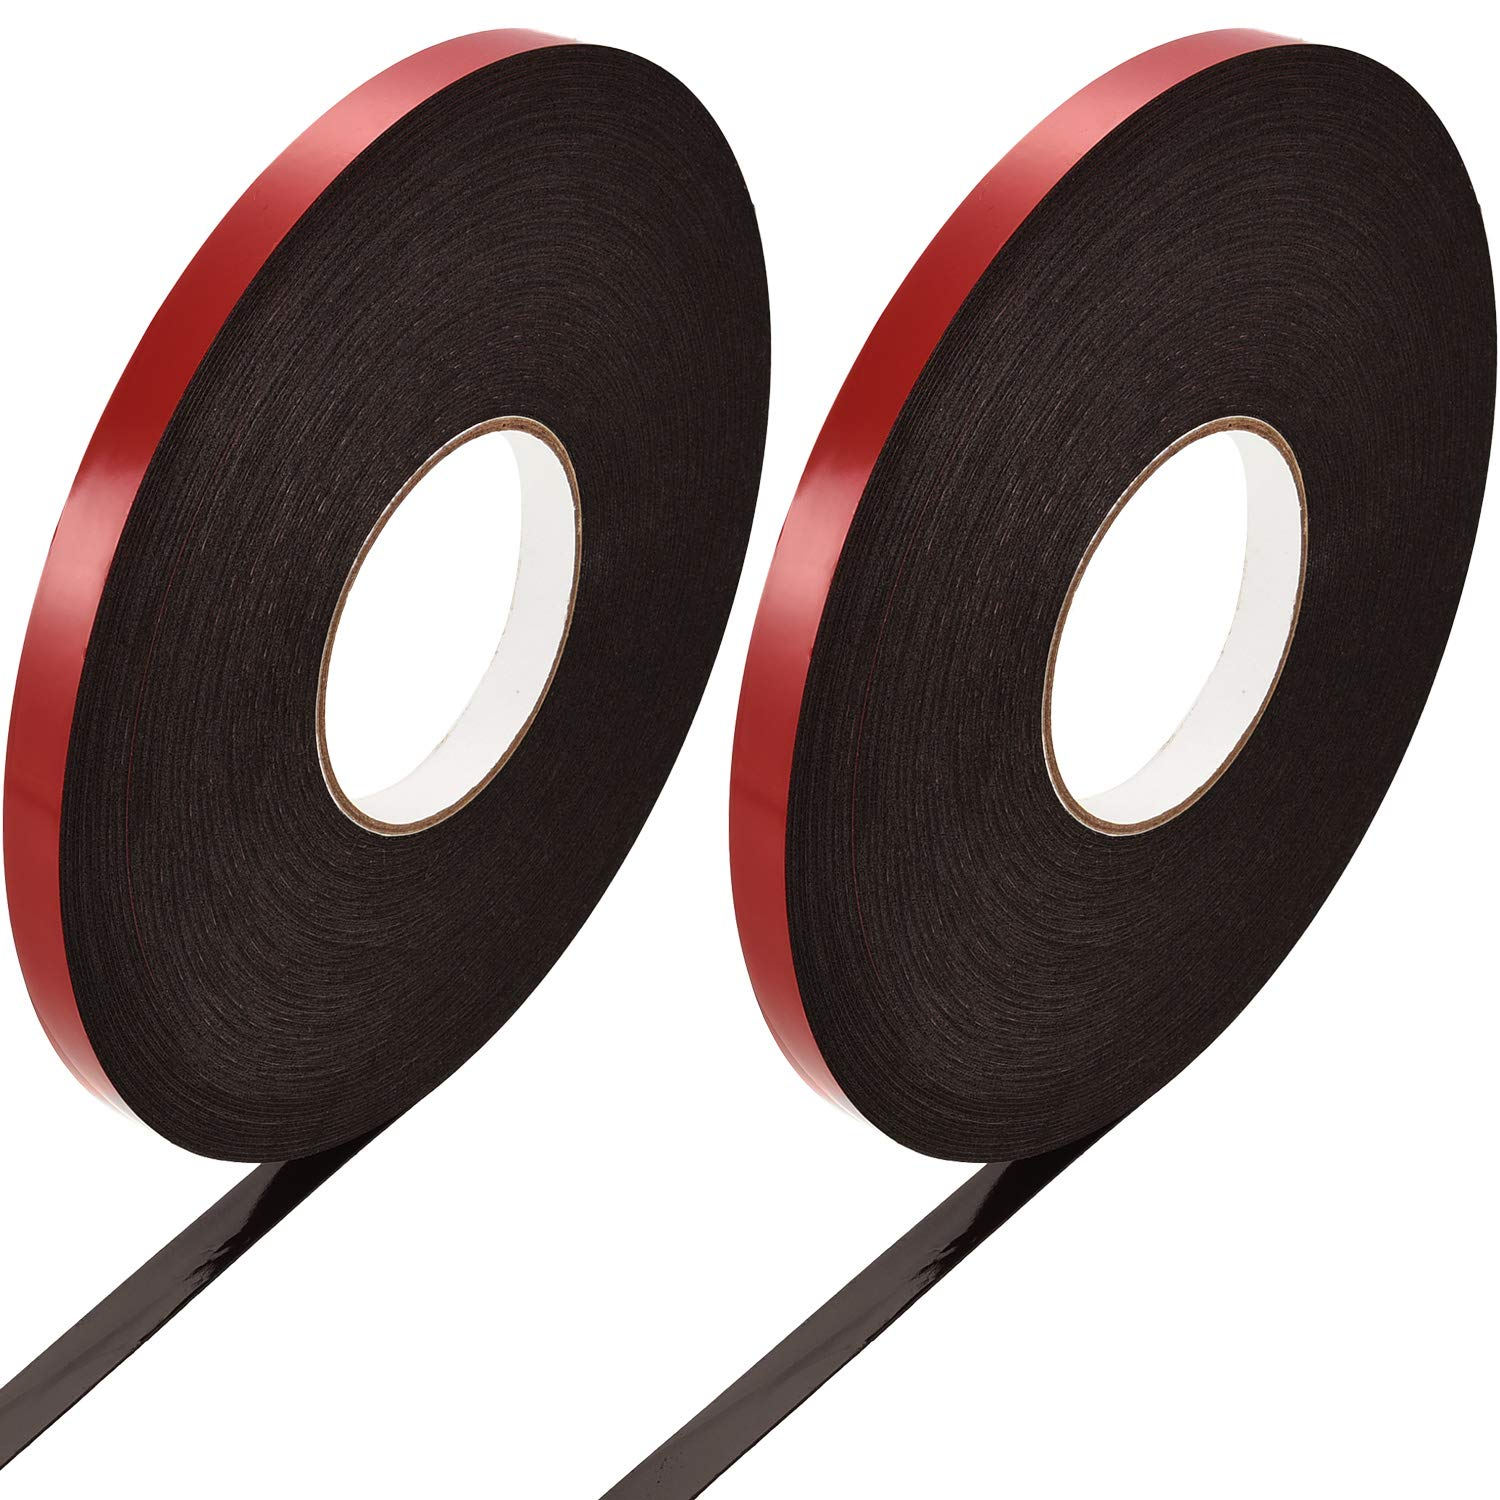 Zhehao 2 Rolls Foam Mounting Tape Double Sided Removable Mounting Tape, 1/ 2 Inch x 196 Feet (13 mm x 60 m)